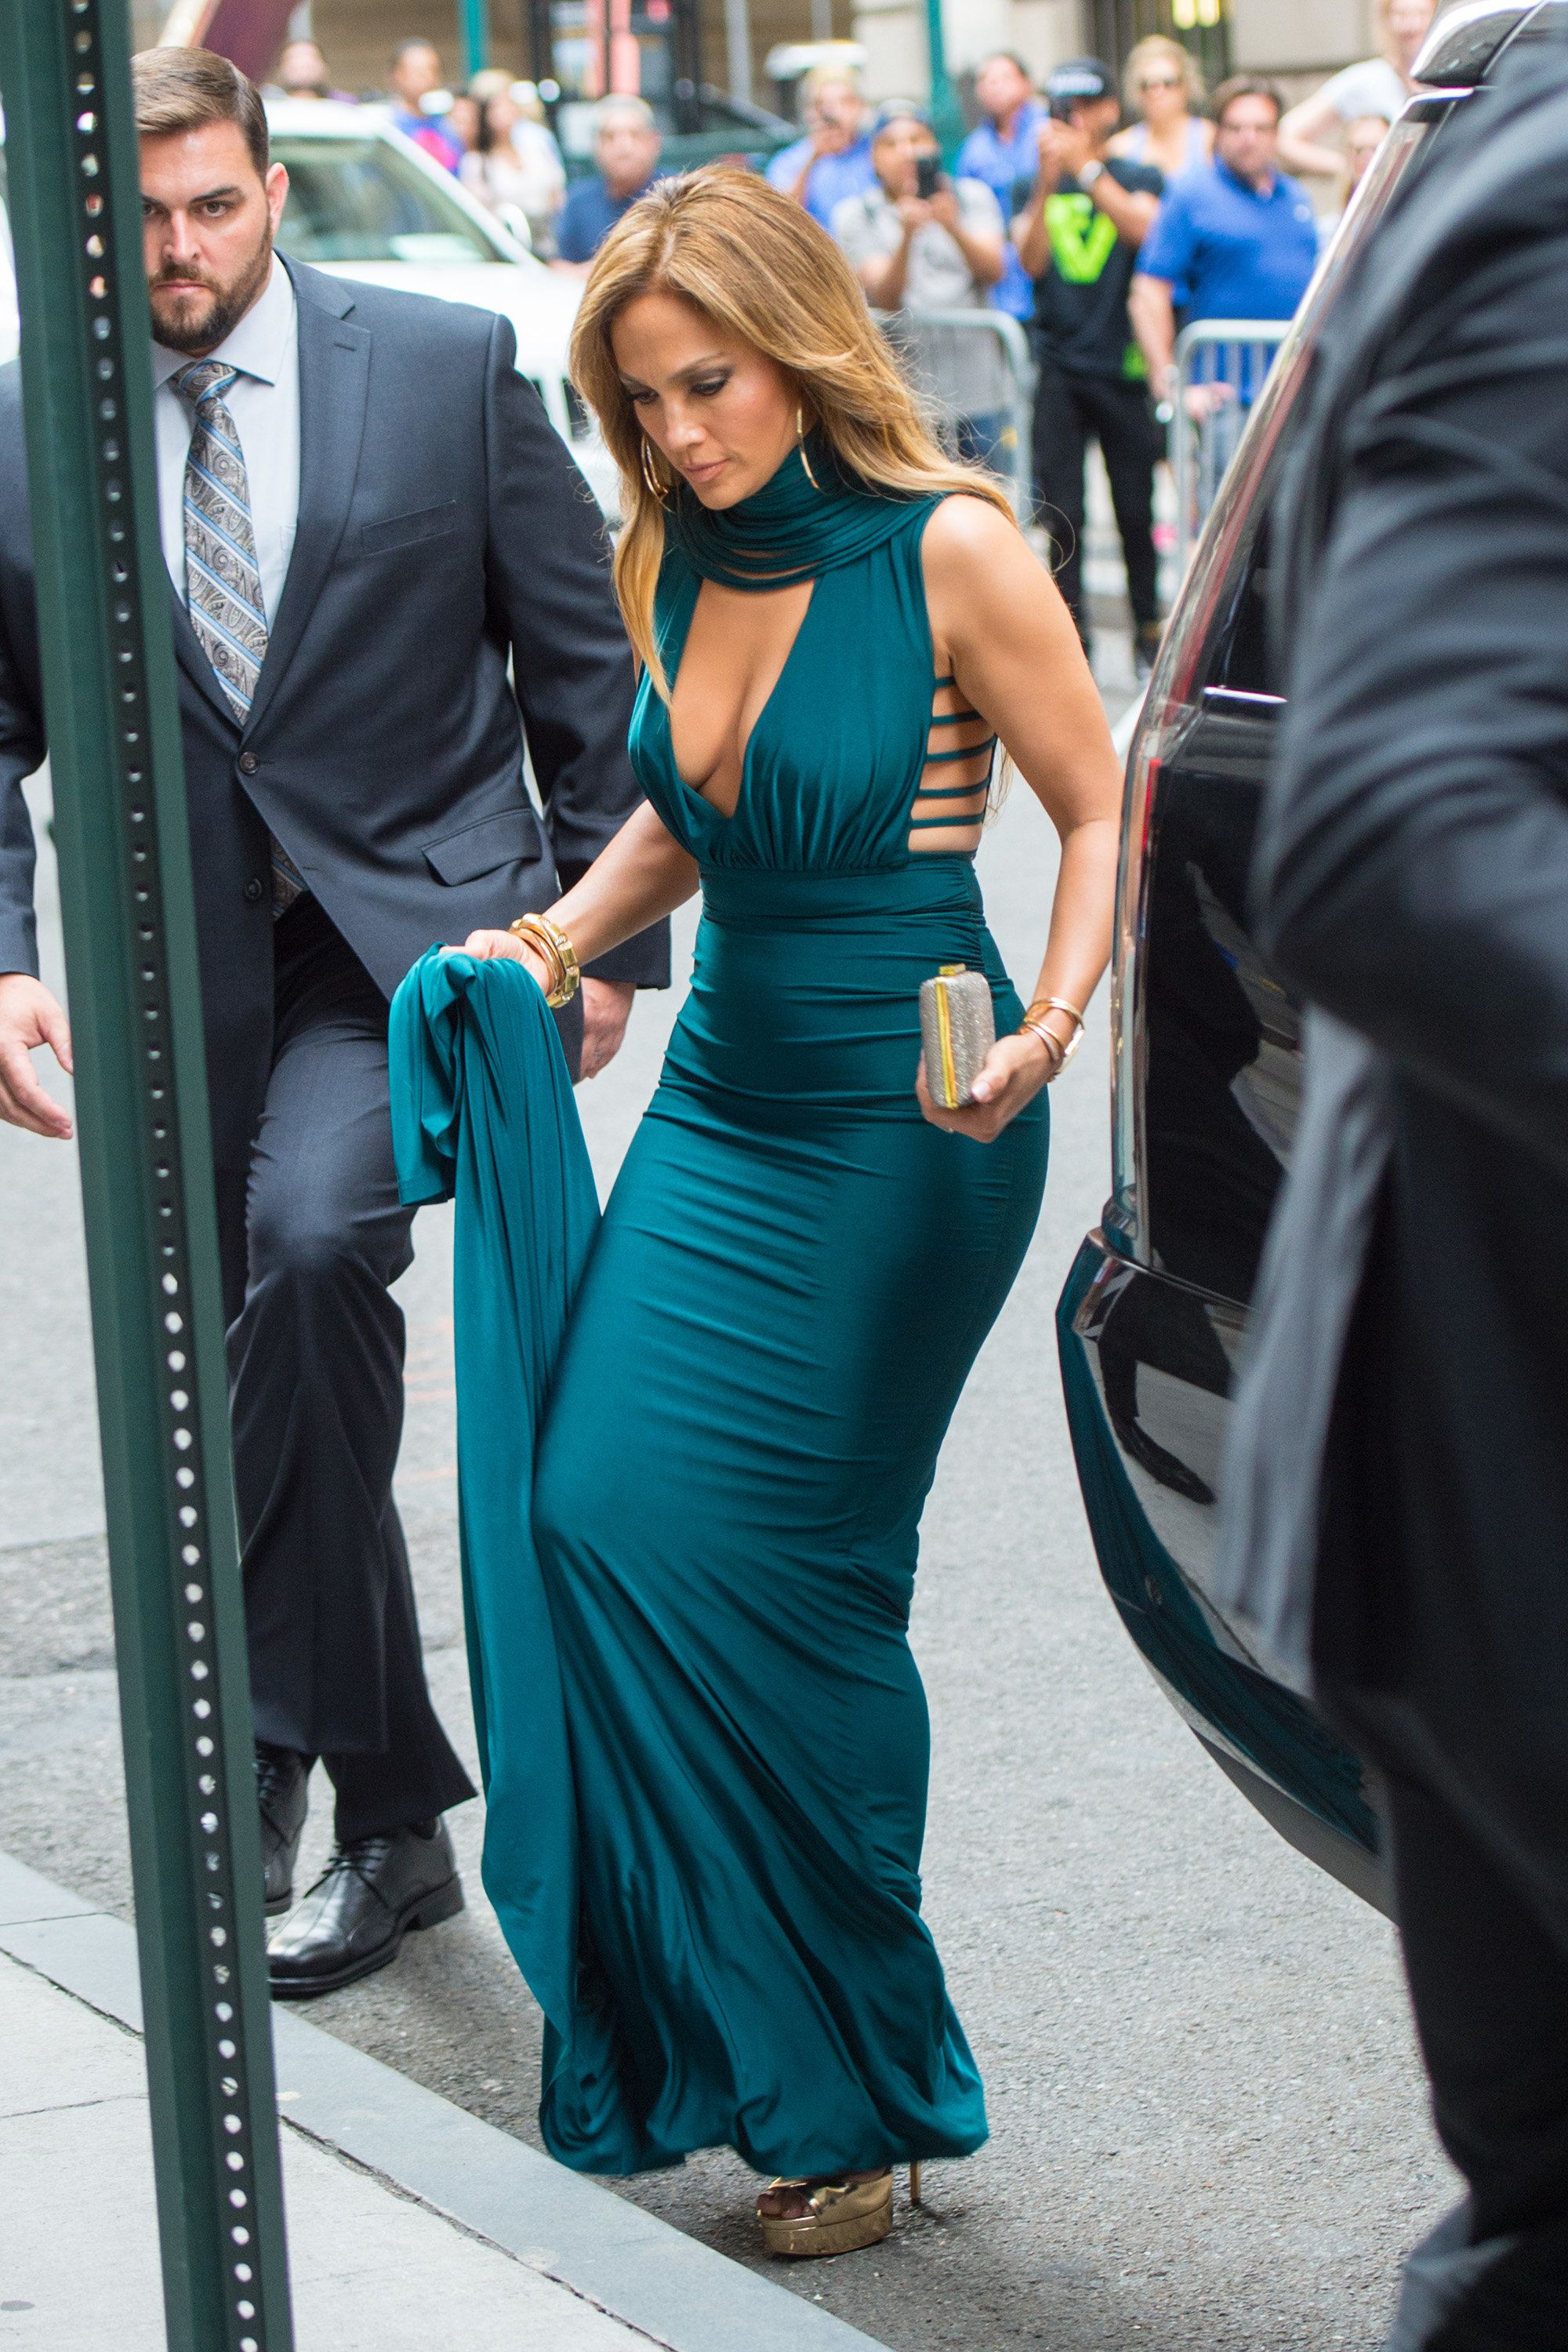 Jennifer Lopez and Alex Rodriguez attend the wedding of Sophie Lasry and Alex Swieca at Cipriani Wall Street in New York City, NY. <P>Pictured: Jennifer Lopez<B>Ref: SPL1550916  060817  </B><BR/>Picture by: Splash News<BR/></P><P><B>Splash News and Pictures</B><BR/>Los Angeles:310-821-2666<BR/>New York:212-619-2666<BR/>London:870-934-2666<BR/>photodesk@splashnews.com<BR/></P>